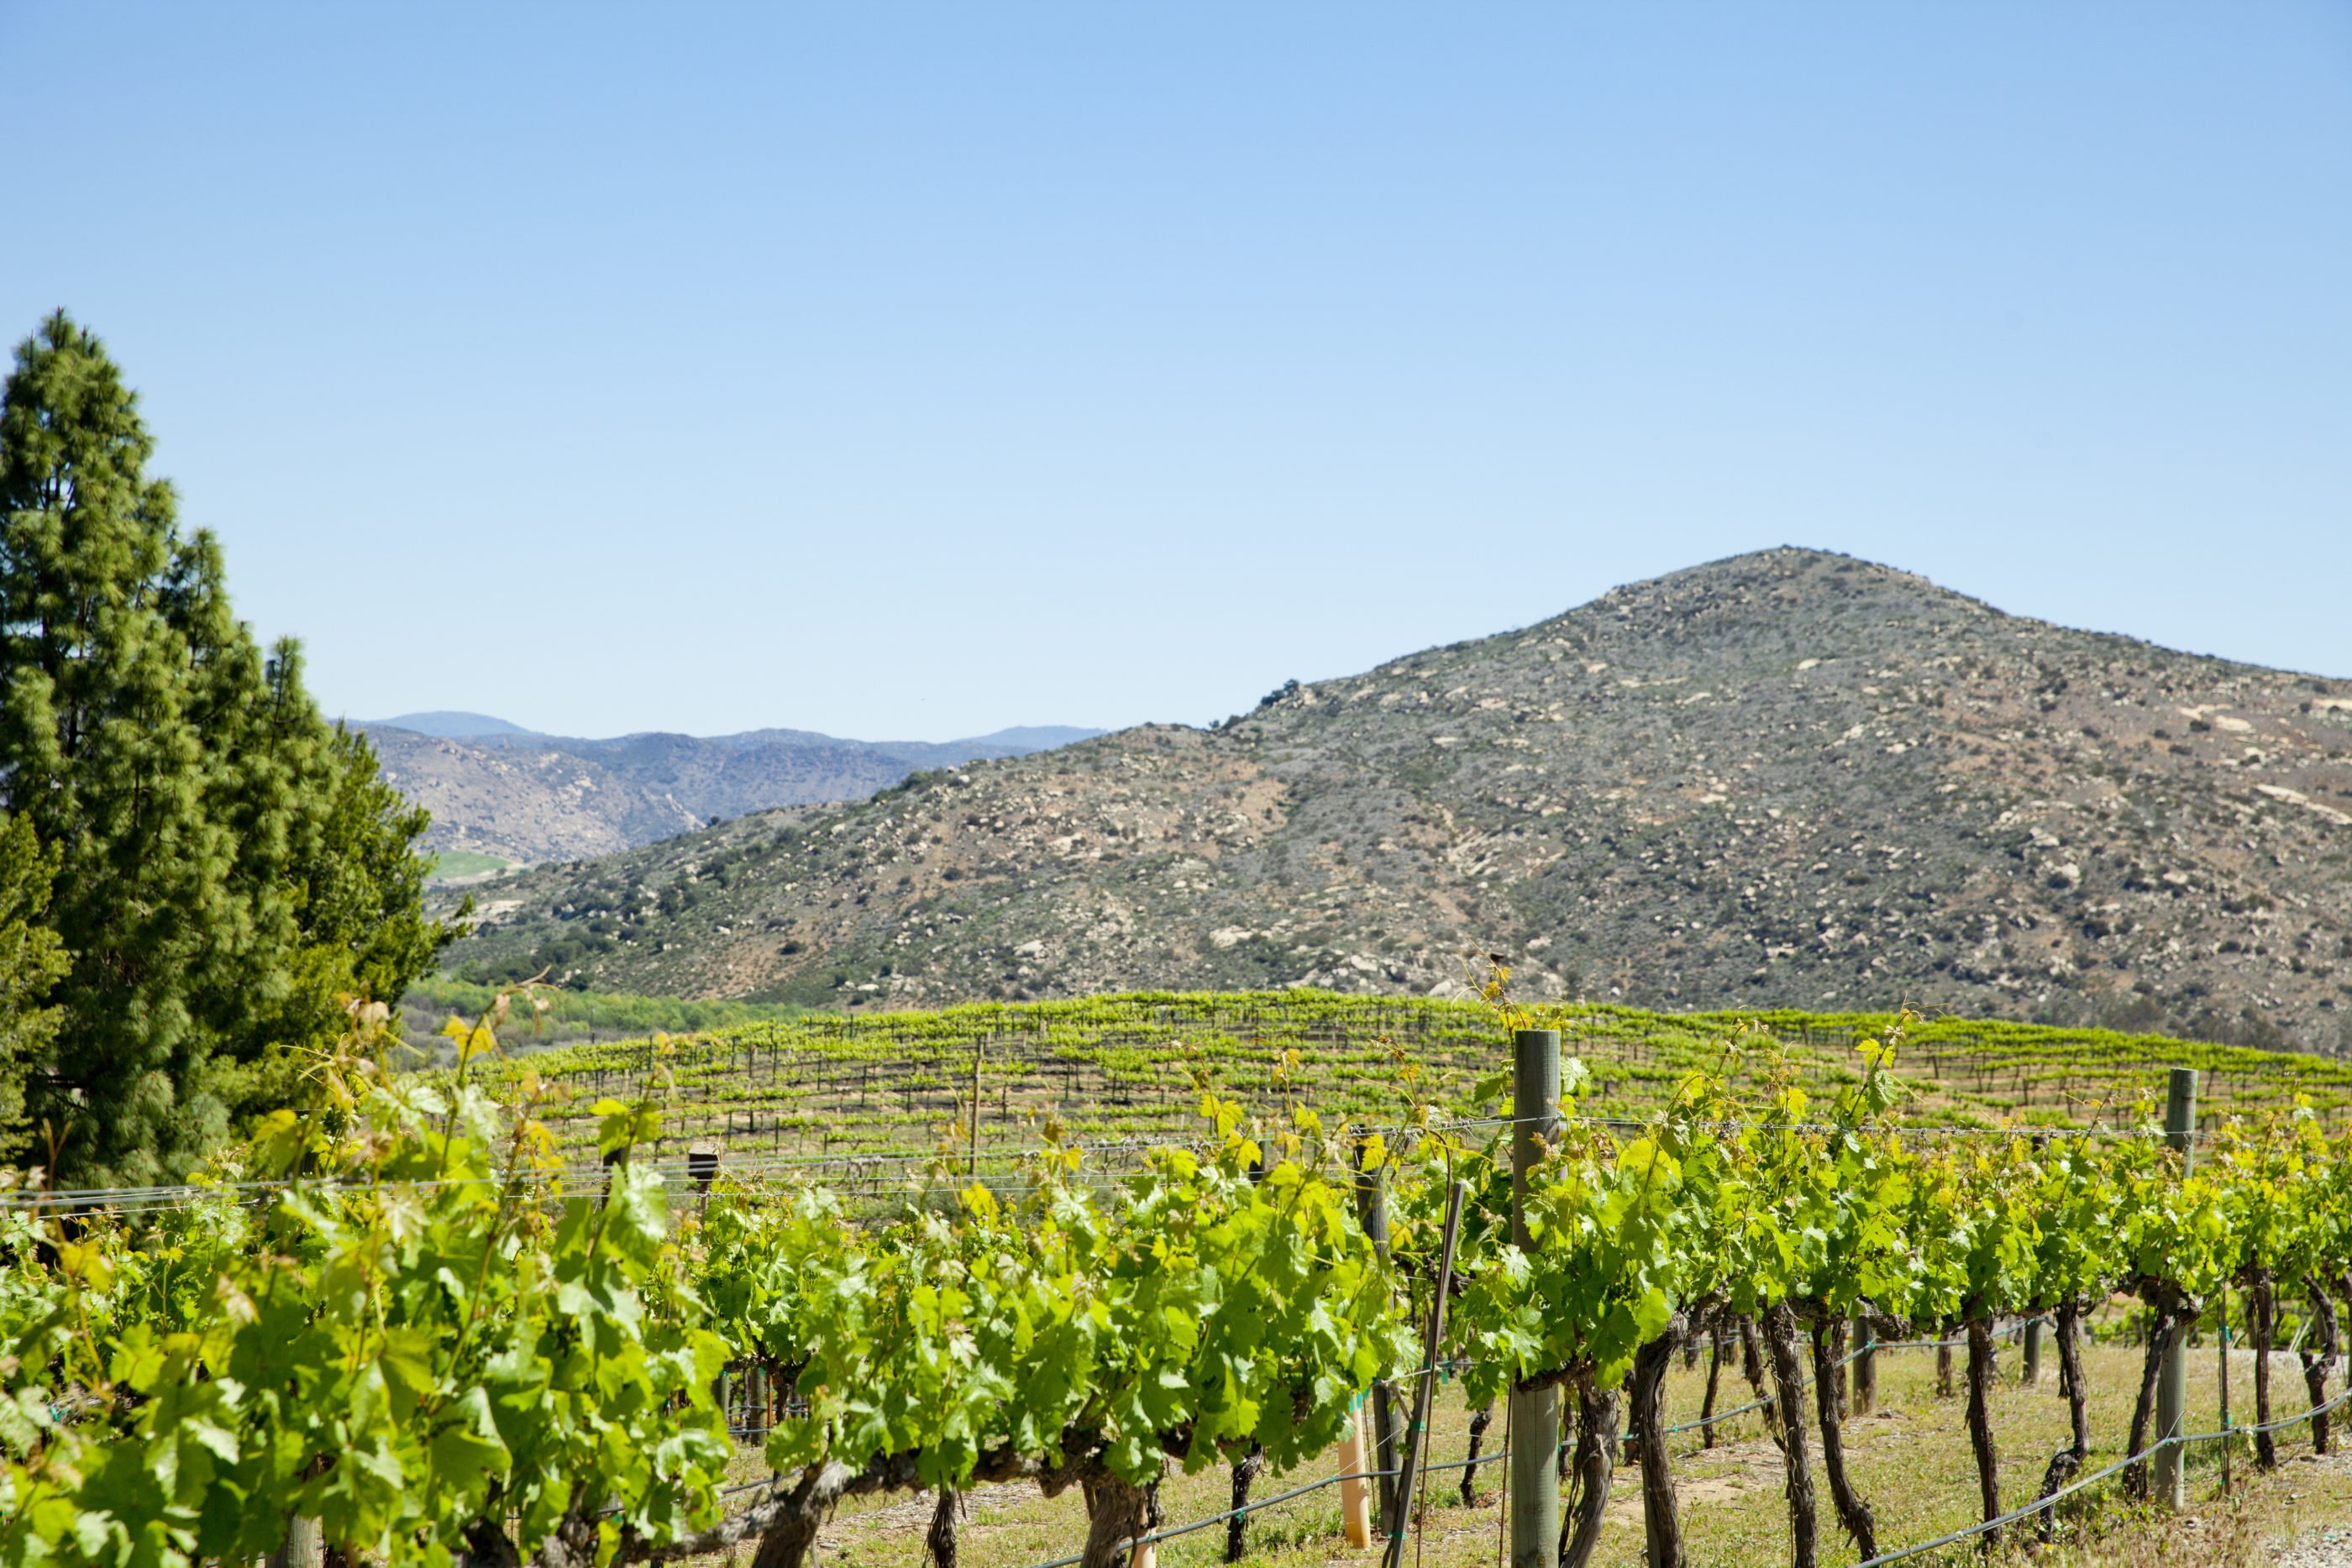 Rows of healthy vineyards with a small hill in the background in rural Escondido, CA.